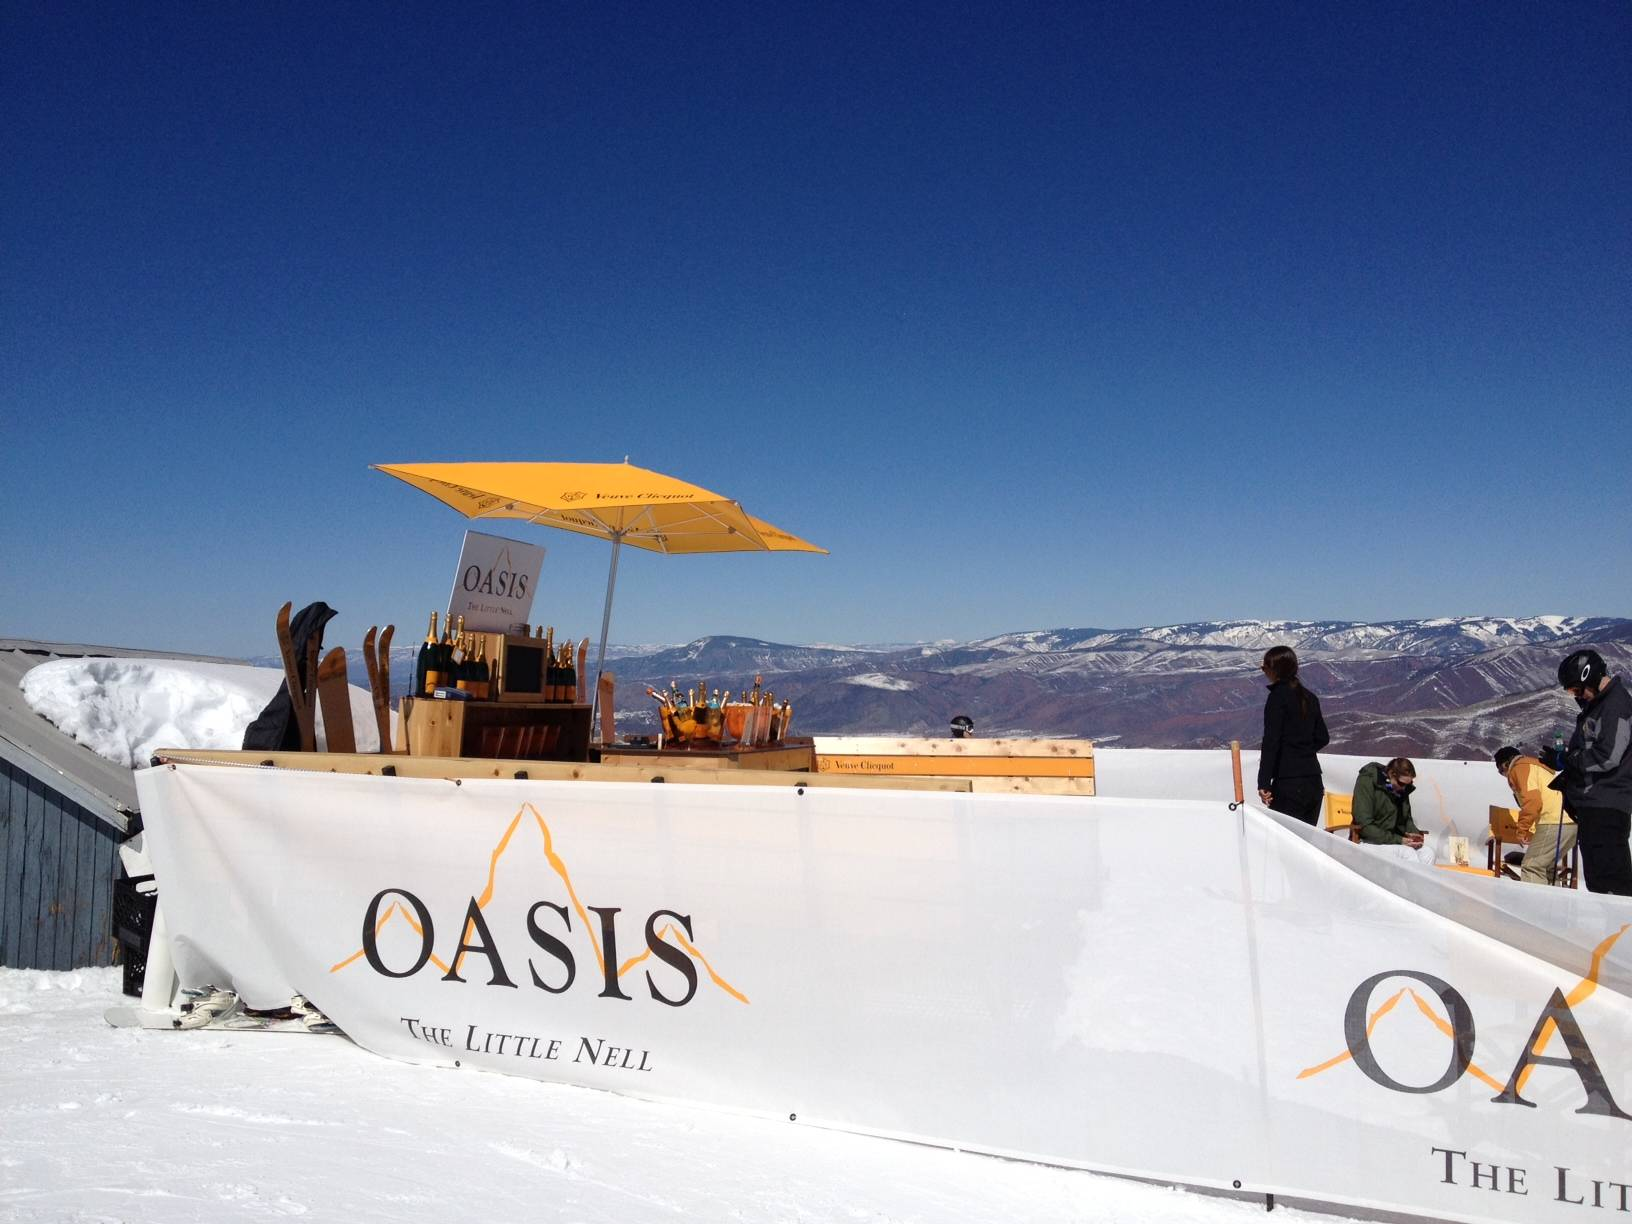 The Oasis, a Veuve-Clicquot-serving pop-up bar on Aspen Mountain in early 2012.